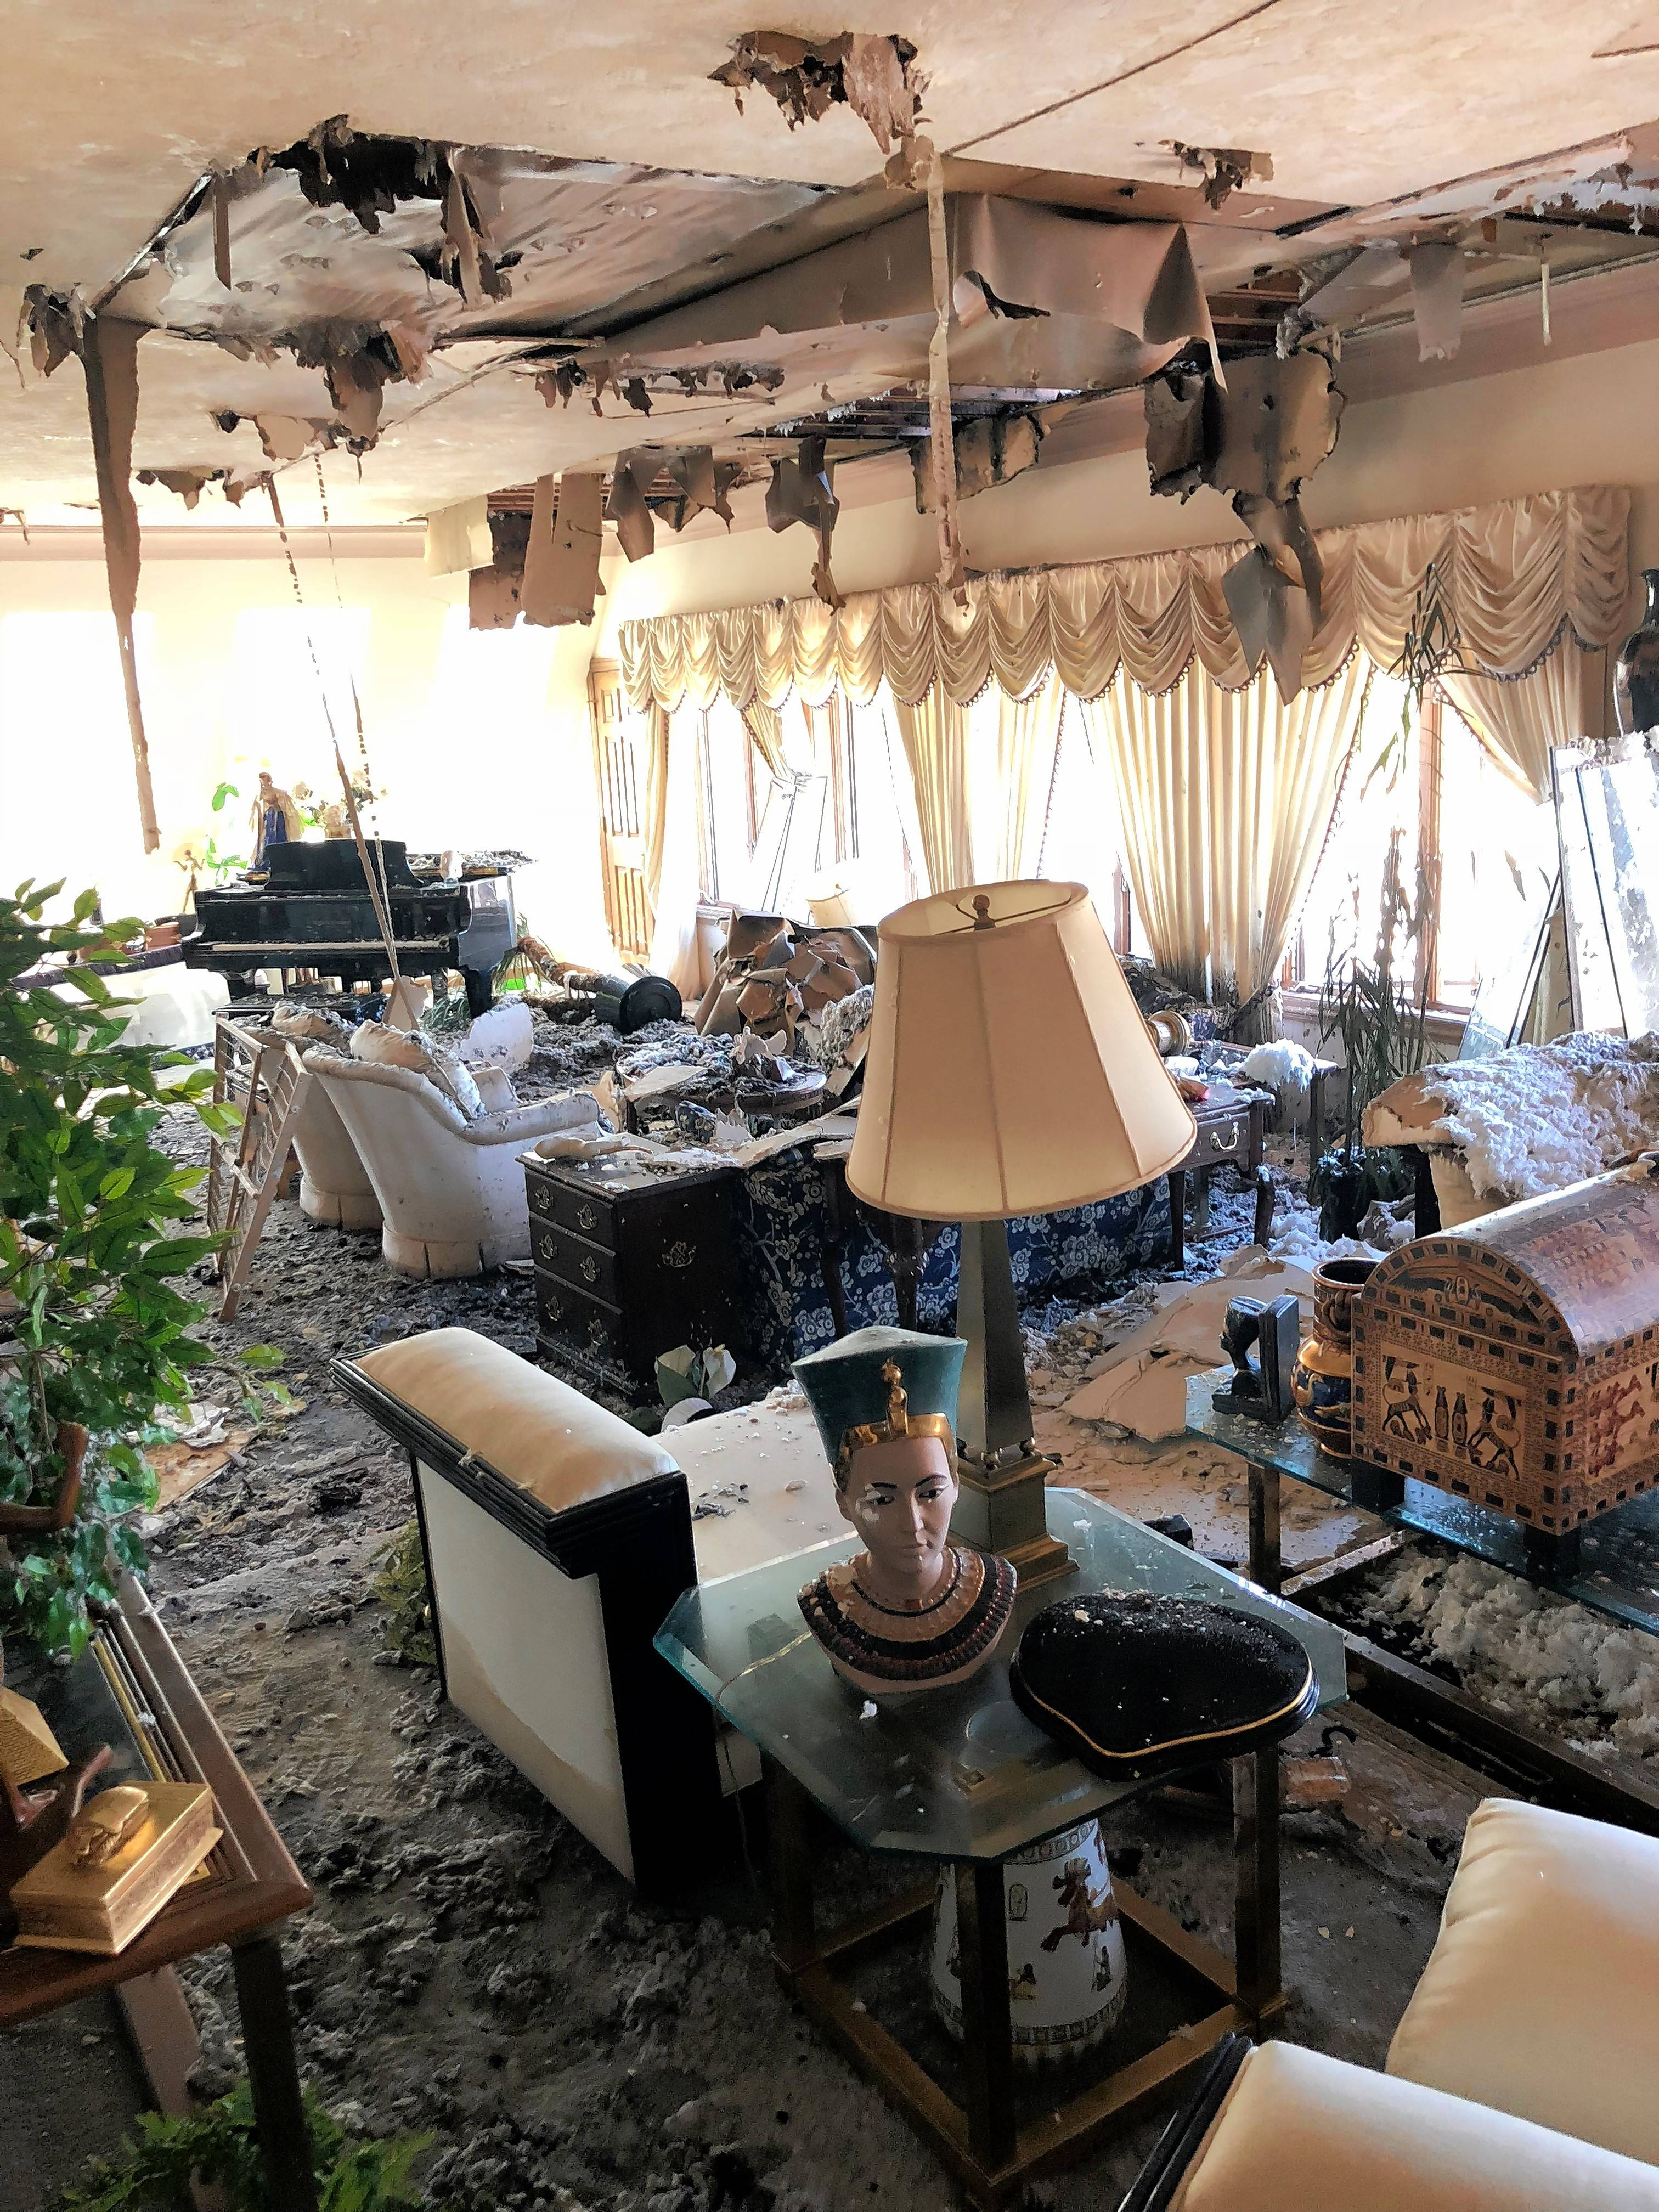 One of the damaged rooms inside the Gold Pyramid House in Wadsworth, where the owners have yet to assess all the damage from water and collapsed ceilings and walls.